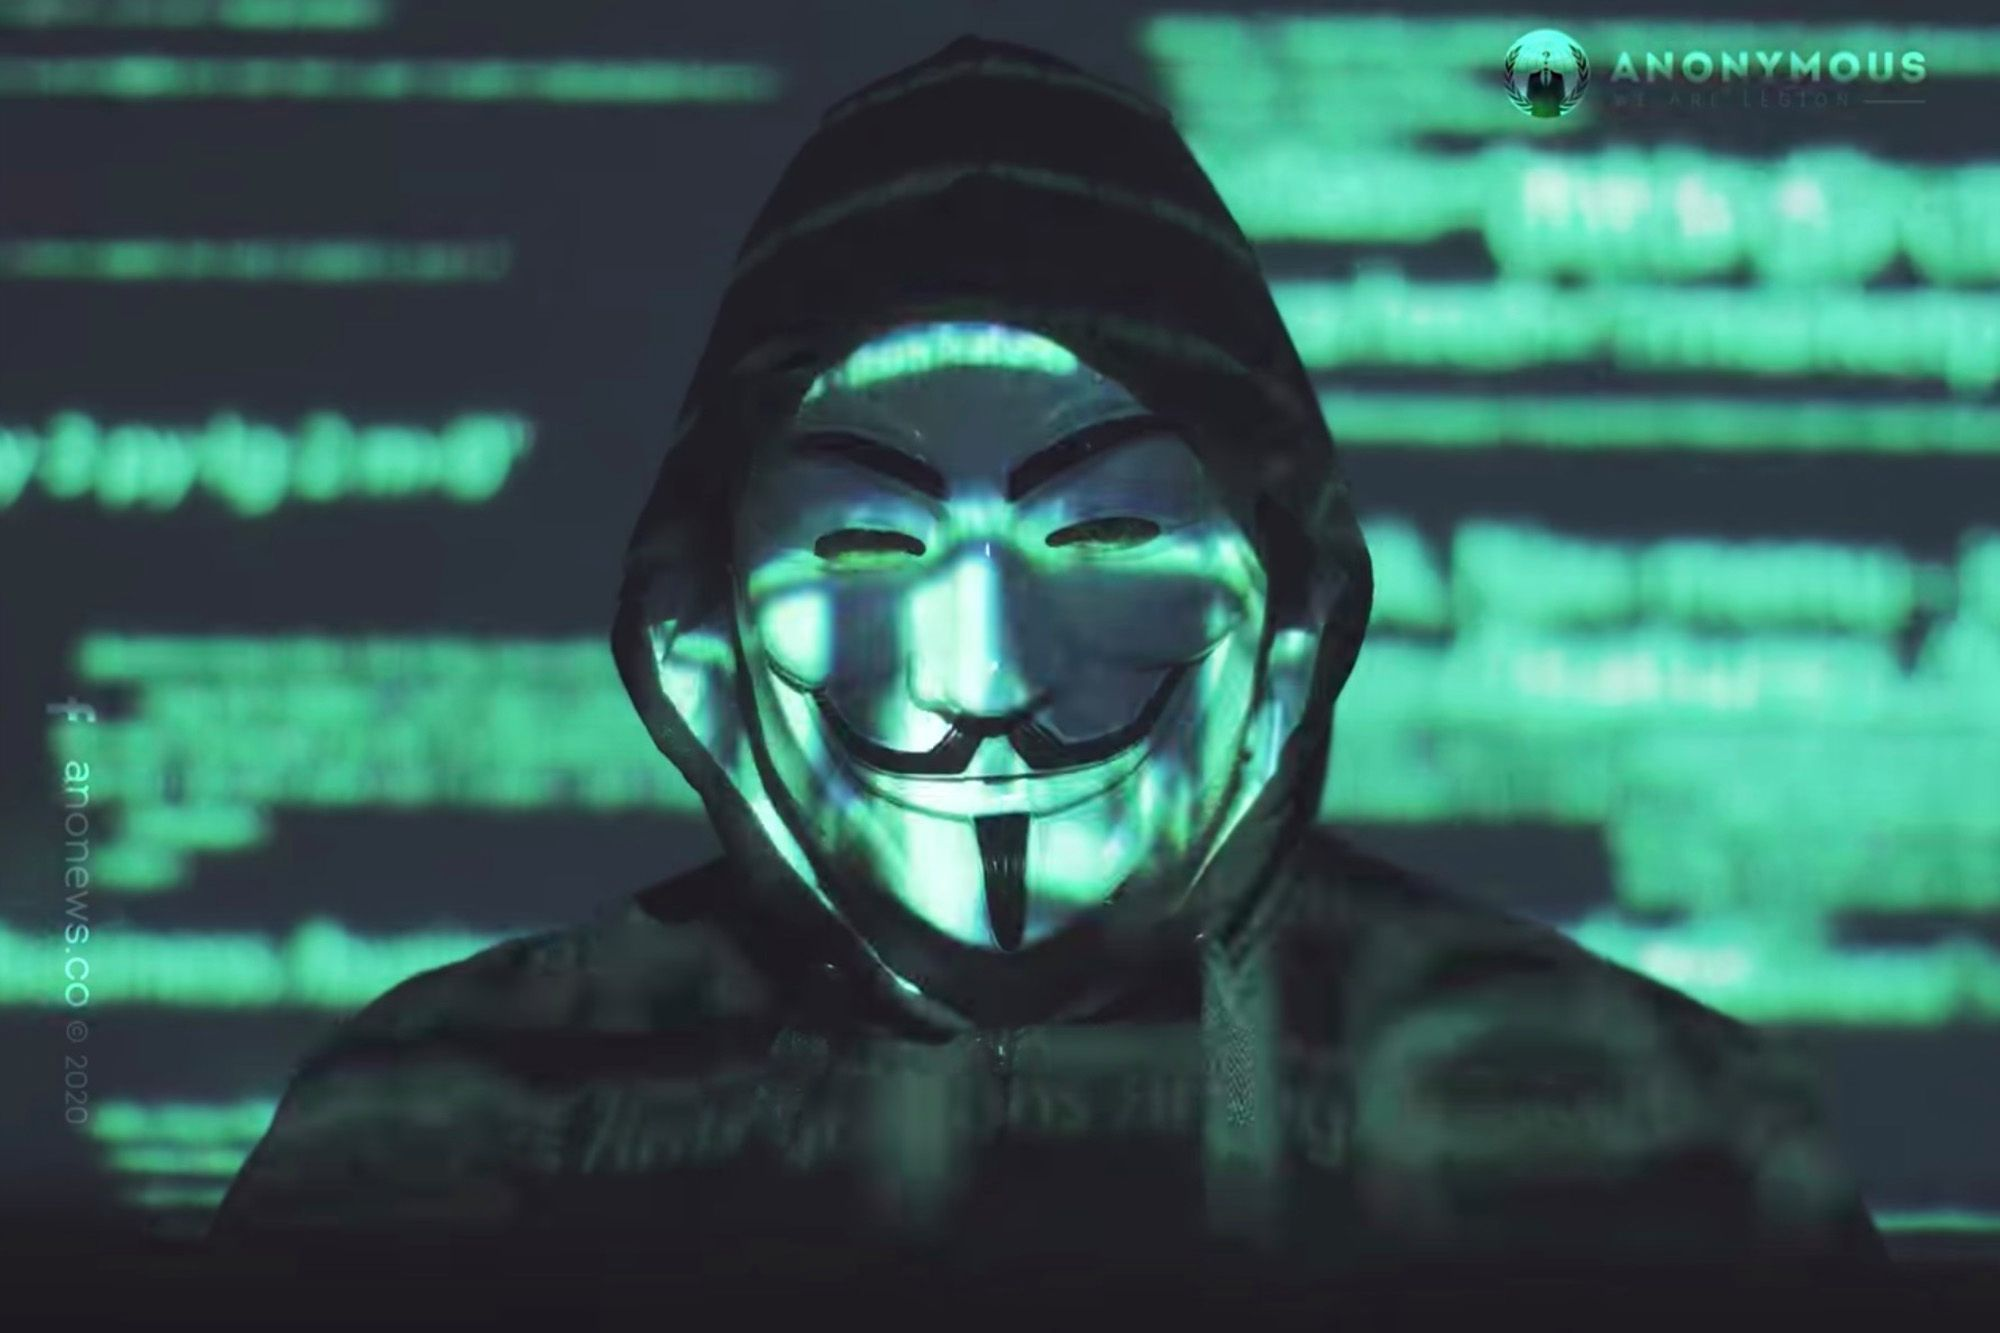 The Anonymous Hackers Allegedly Hacked The Website of The Nigerian Government